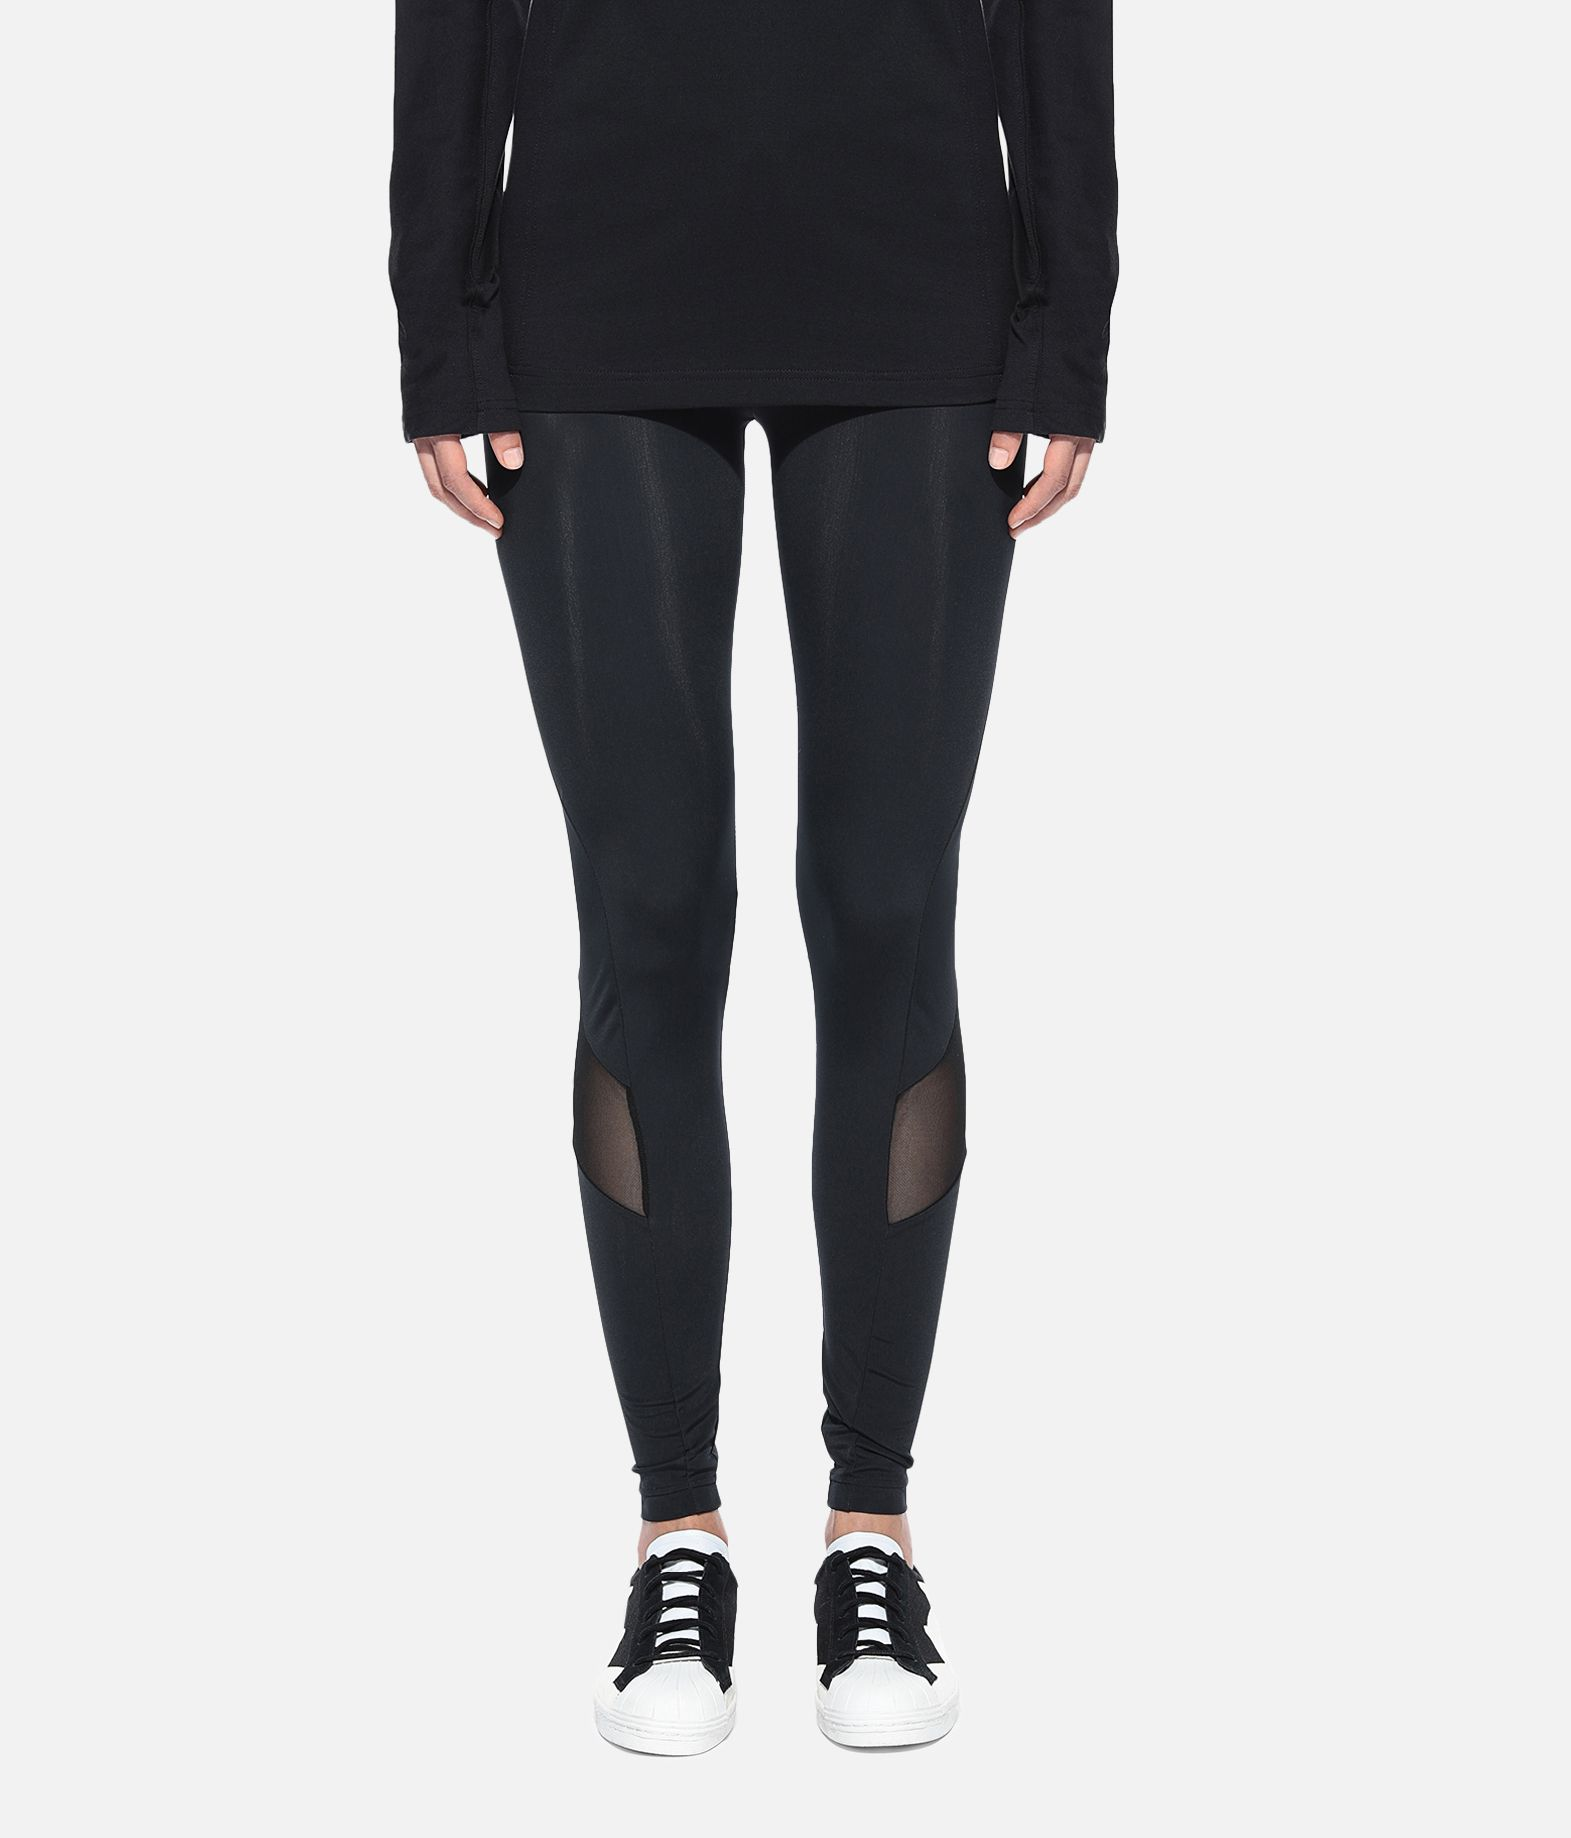 Y-3 Y-3 New Classic Tights Leggings Woman r